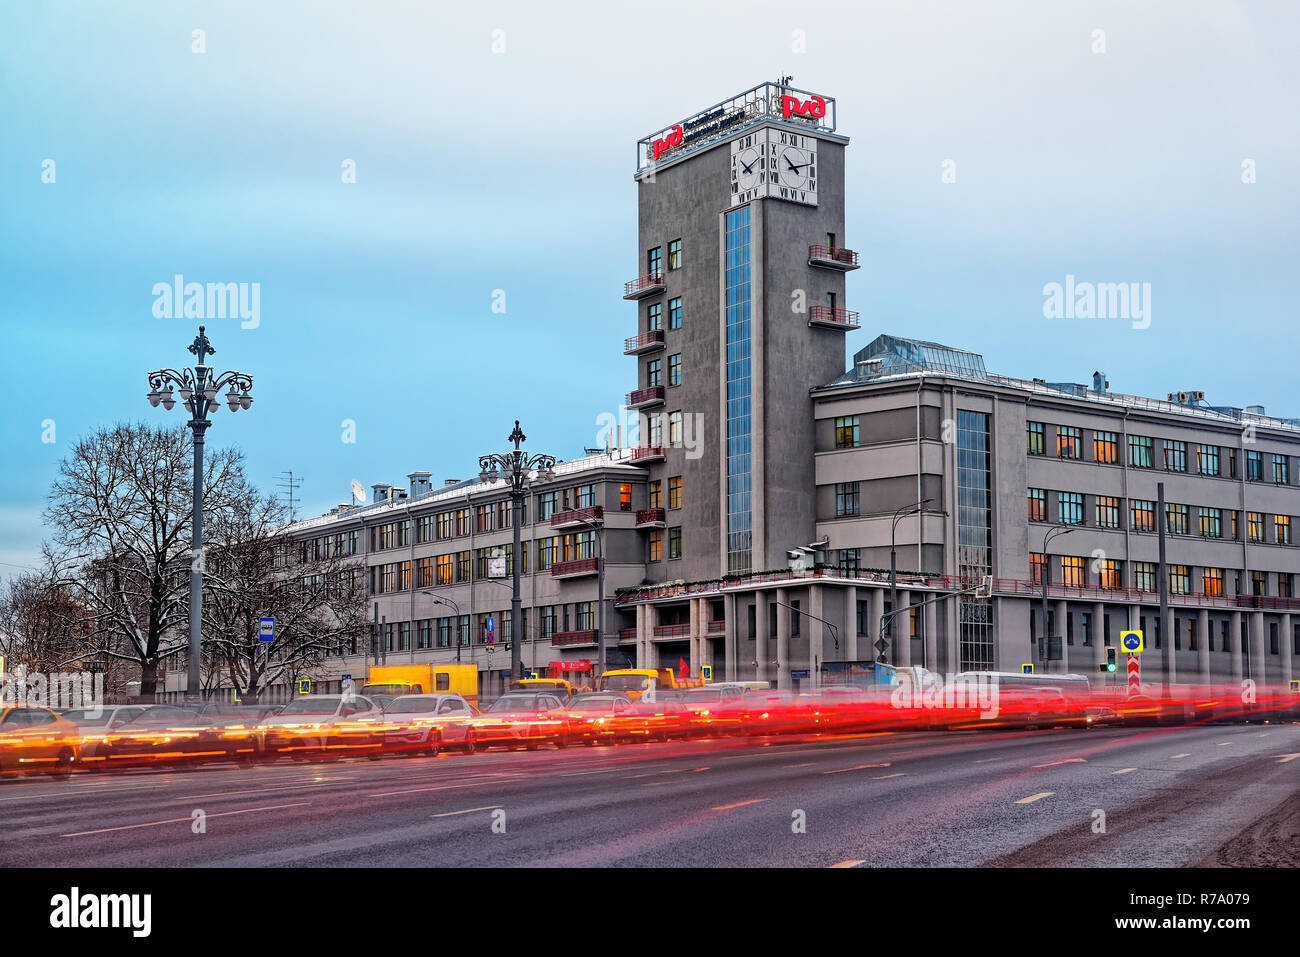 MOSCOW, RUSSIA - DECEMBER, 2018: Building Management of the Southeast Railway, JSC RZD, one of the symbols of Moscow and Garden Ring avenue in gloomy  - Stock Image